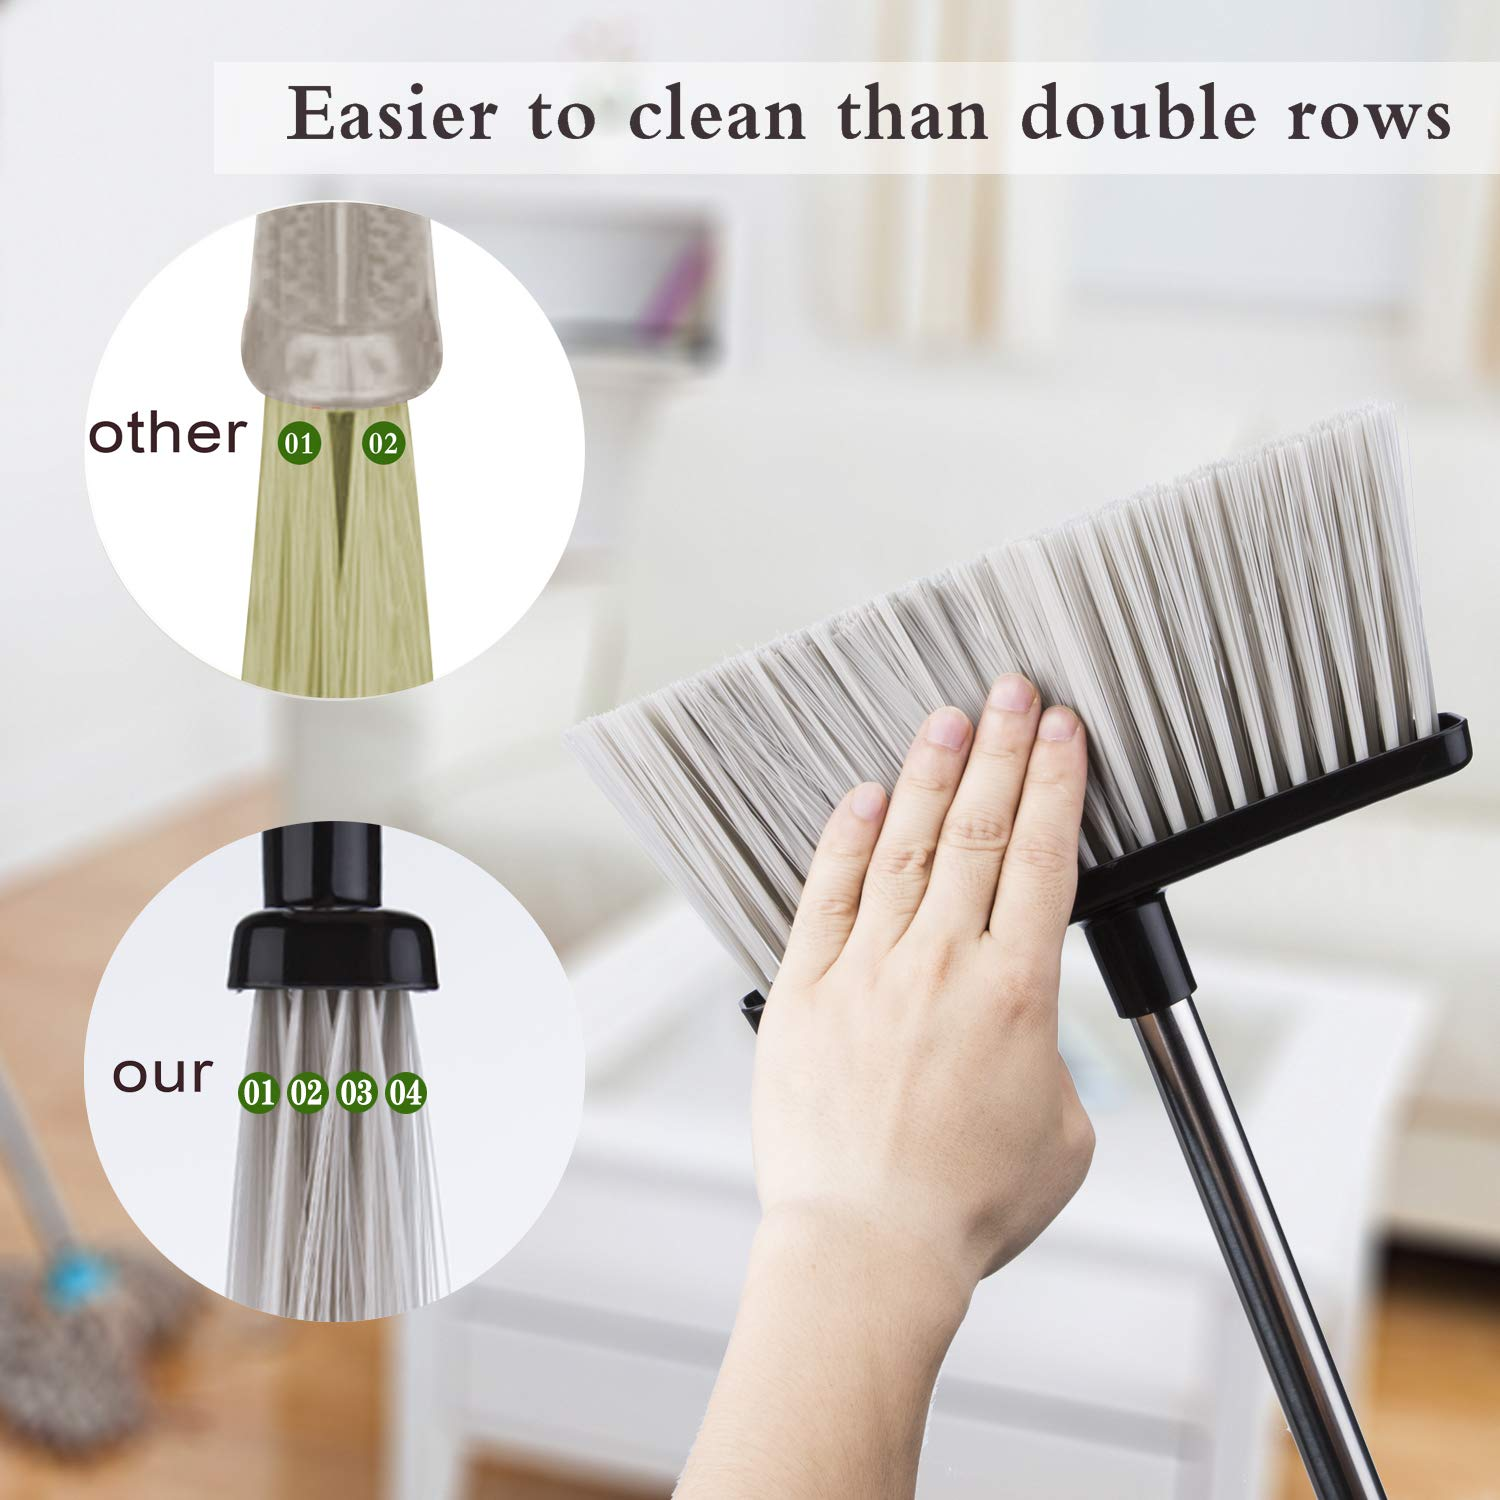 Broom and Dustpan Set with Lid [2019 New Design] Outdoor Indoor Broom Dust Pan 3 Foot Angle Heavy Push Combo Upright Long Handle for Kids Garden Pet Dog Hair Wood Floor Sweep Kitchen House (Black 02) by OLLSDIRE (Image #3)